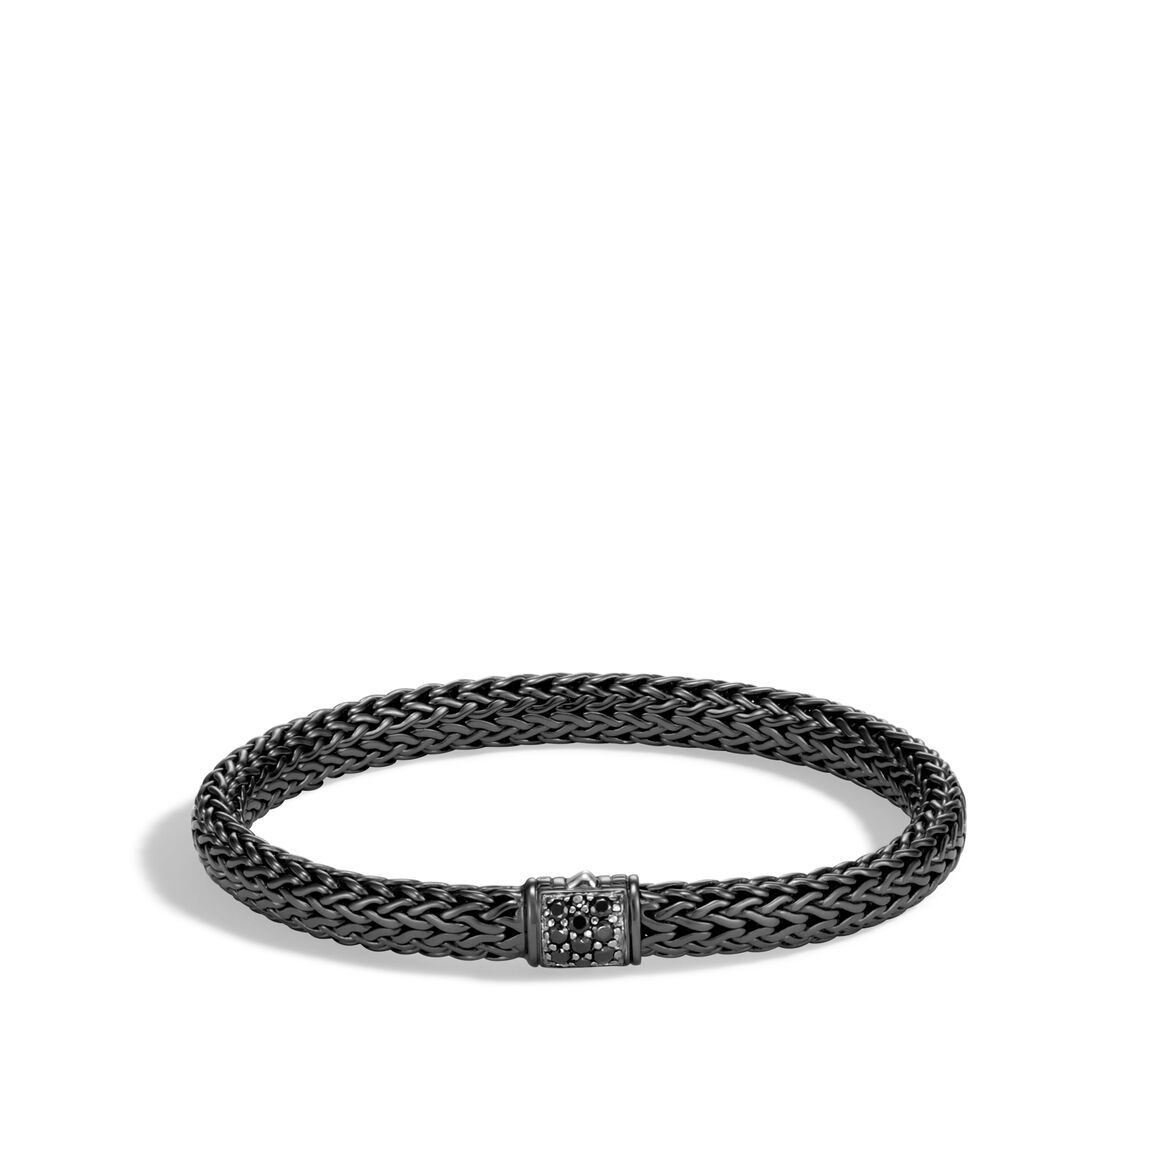 Classic Chain 6.5MM Bracelet in Blackened Silver, Gemstone